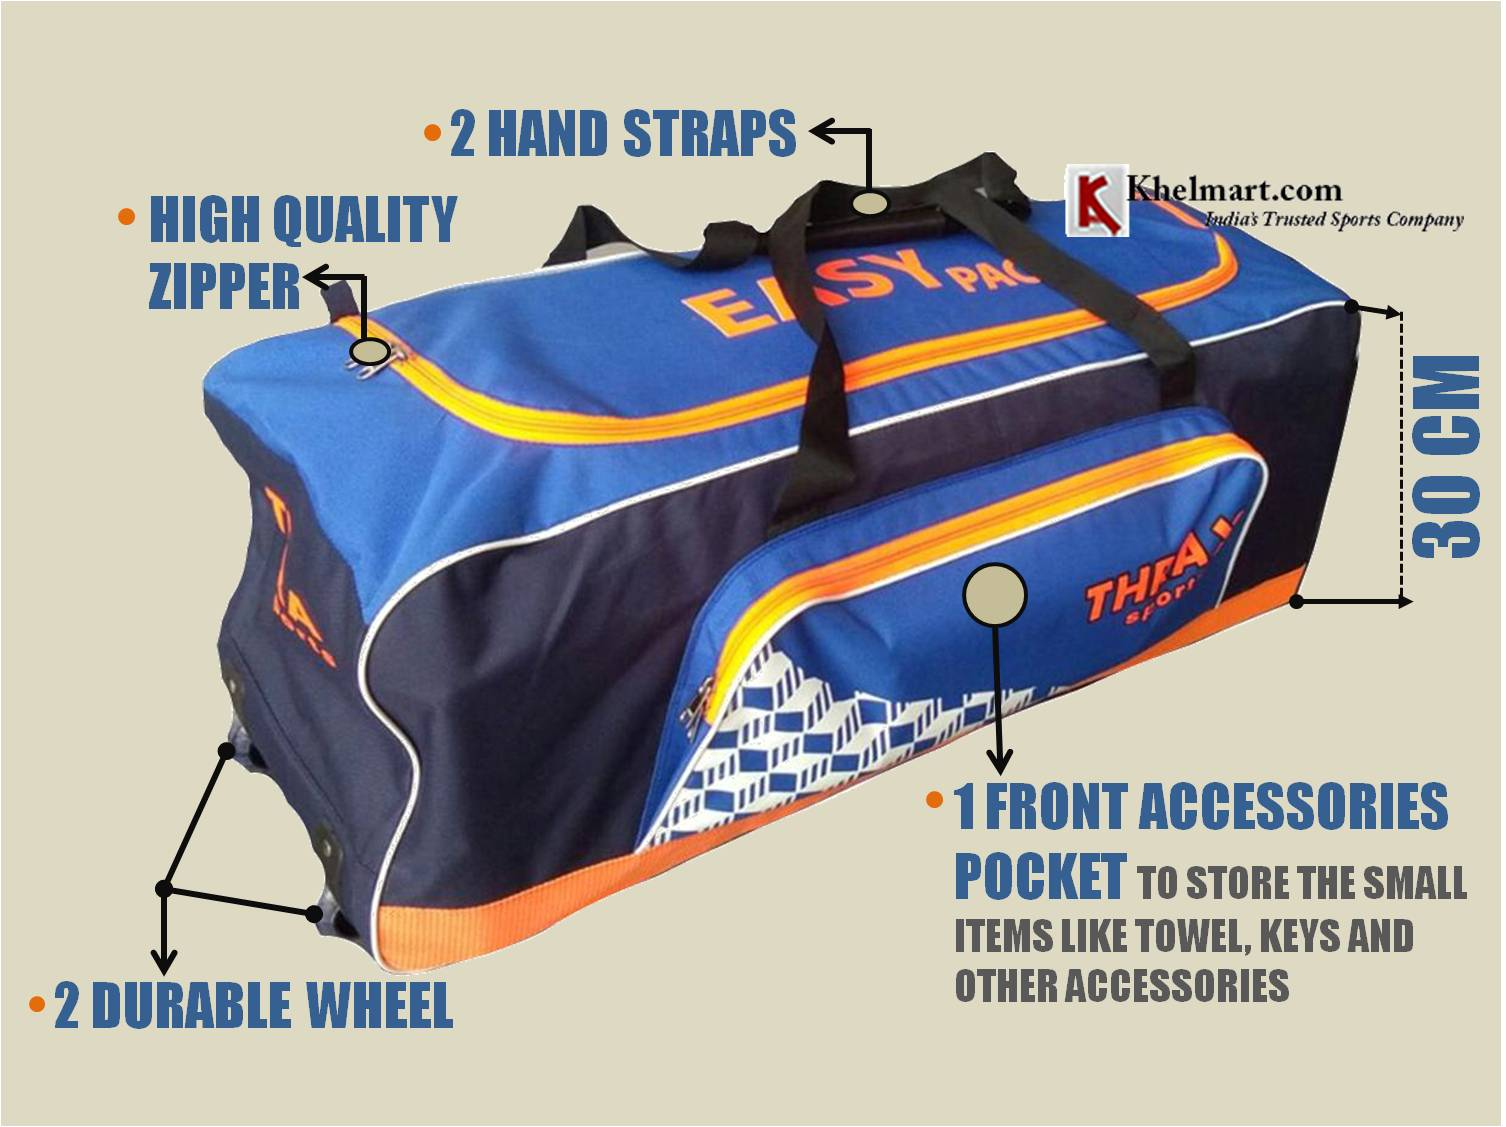 90ab86489 Thrax Ezy Pack Wheel Cricket Kit Bag Blue and Orange - Buy Thrax Ezy ...